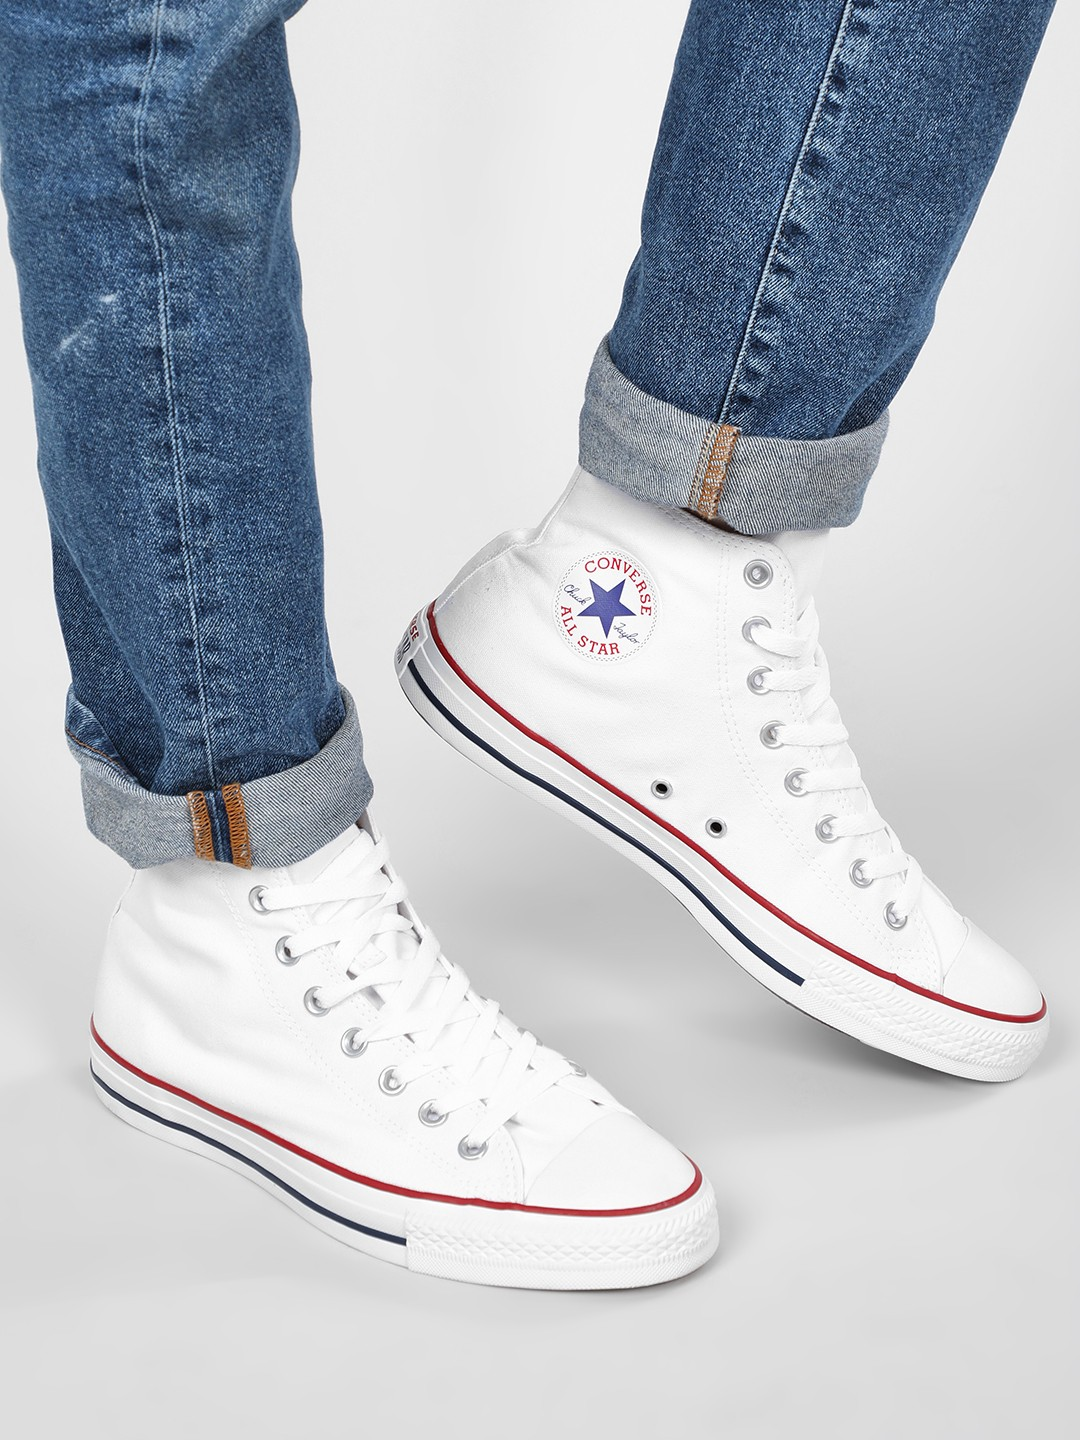 Buy Converse White Chuck Taylor All Star High Top Sneakers